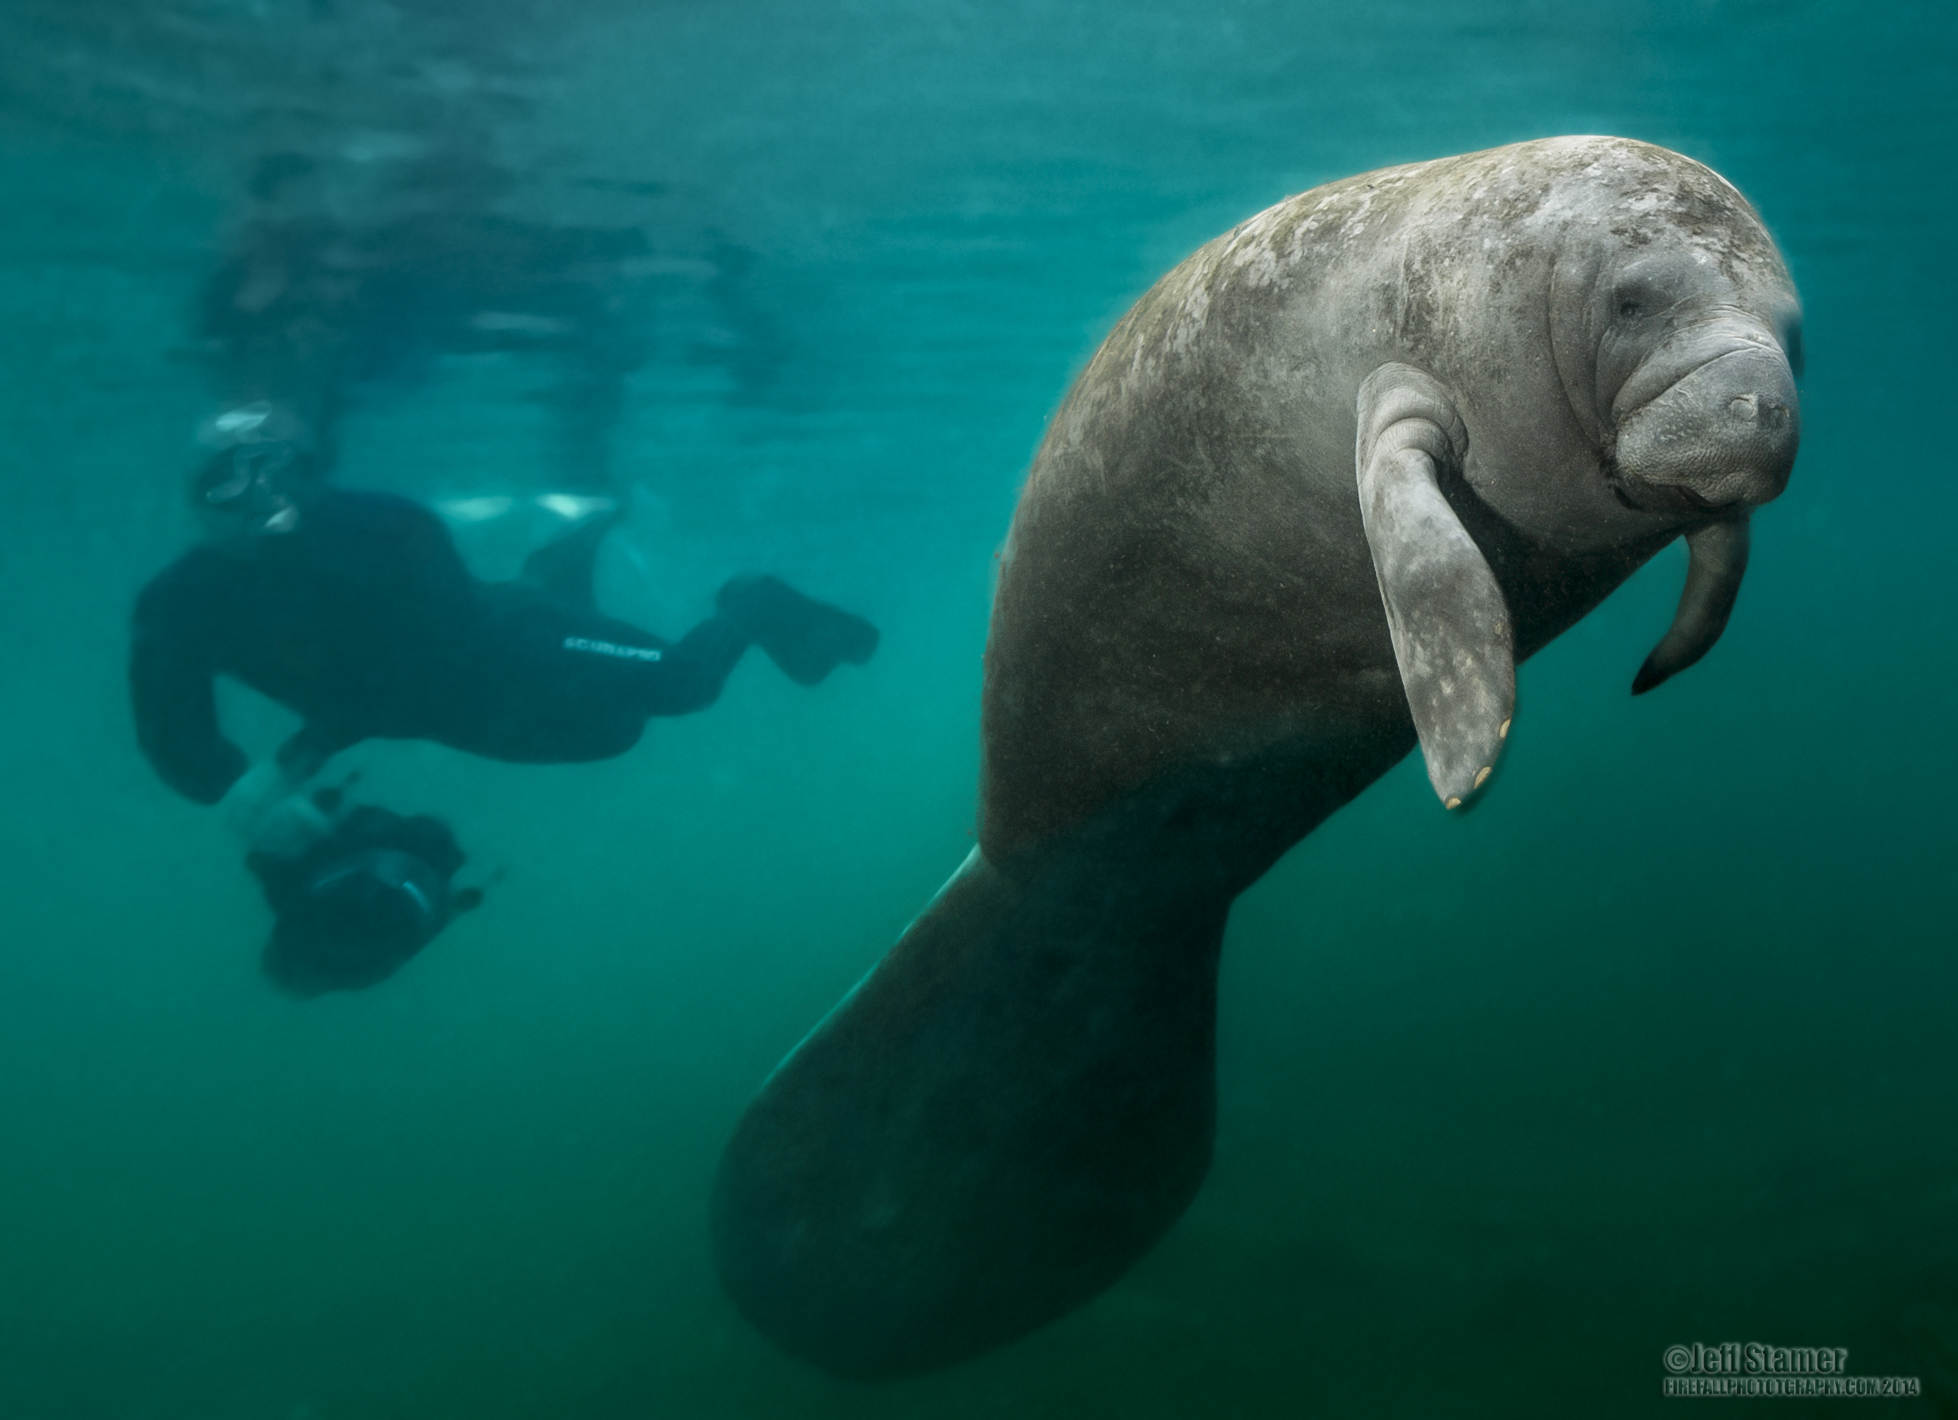 HQ Manatee Wallpapers | File 1213.19Kb